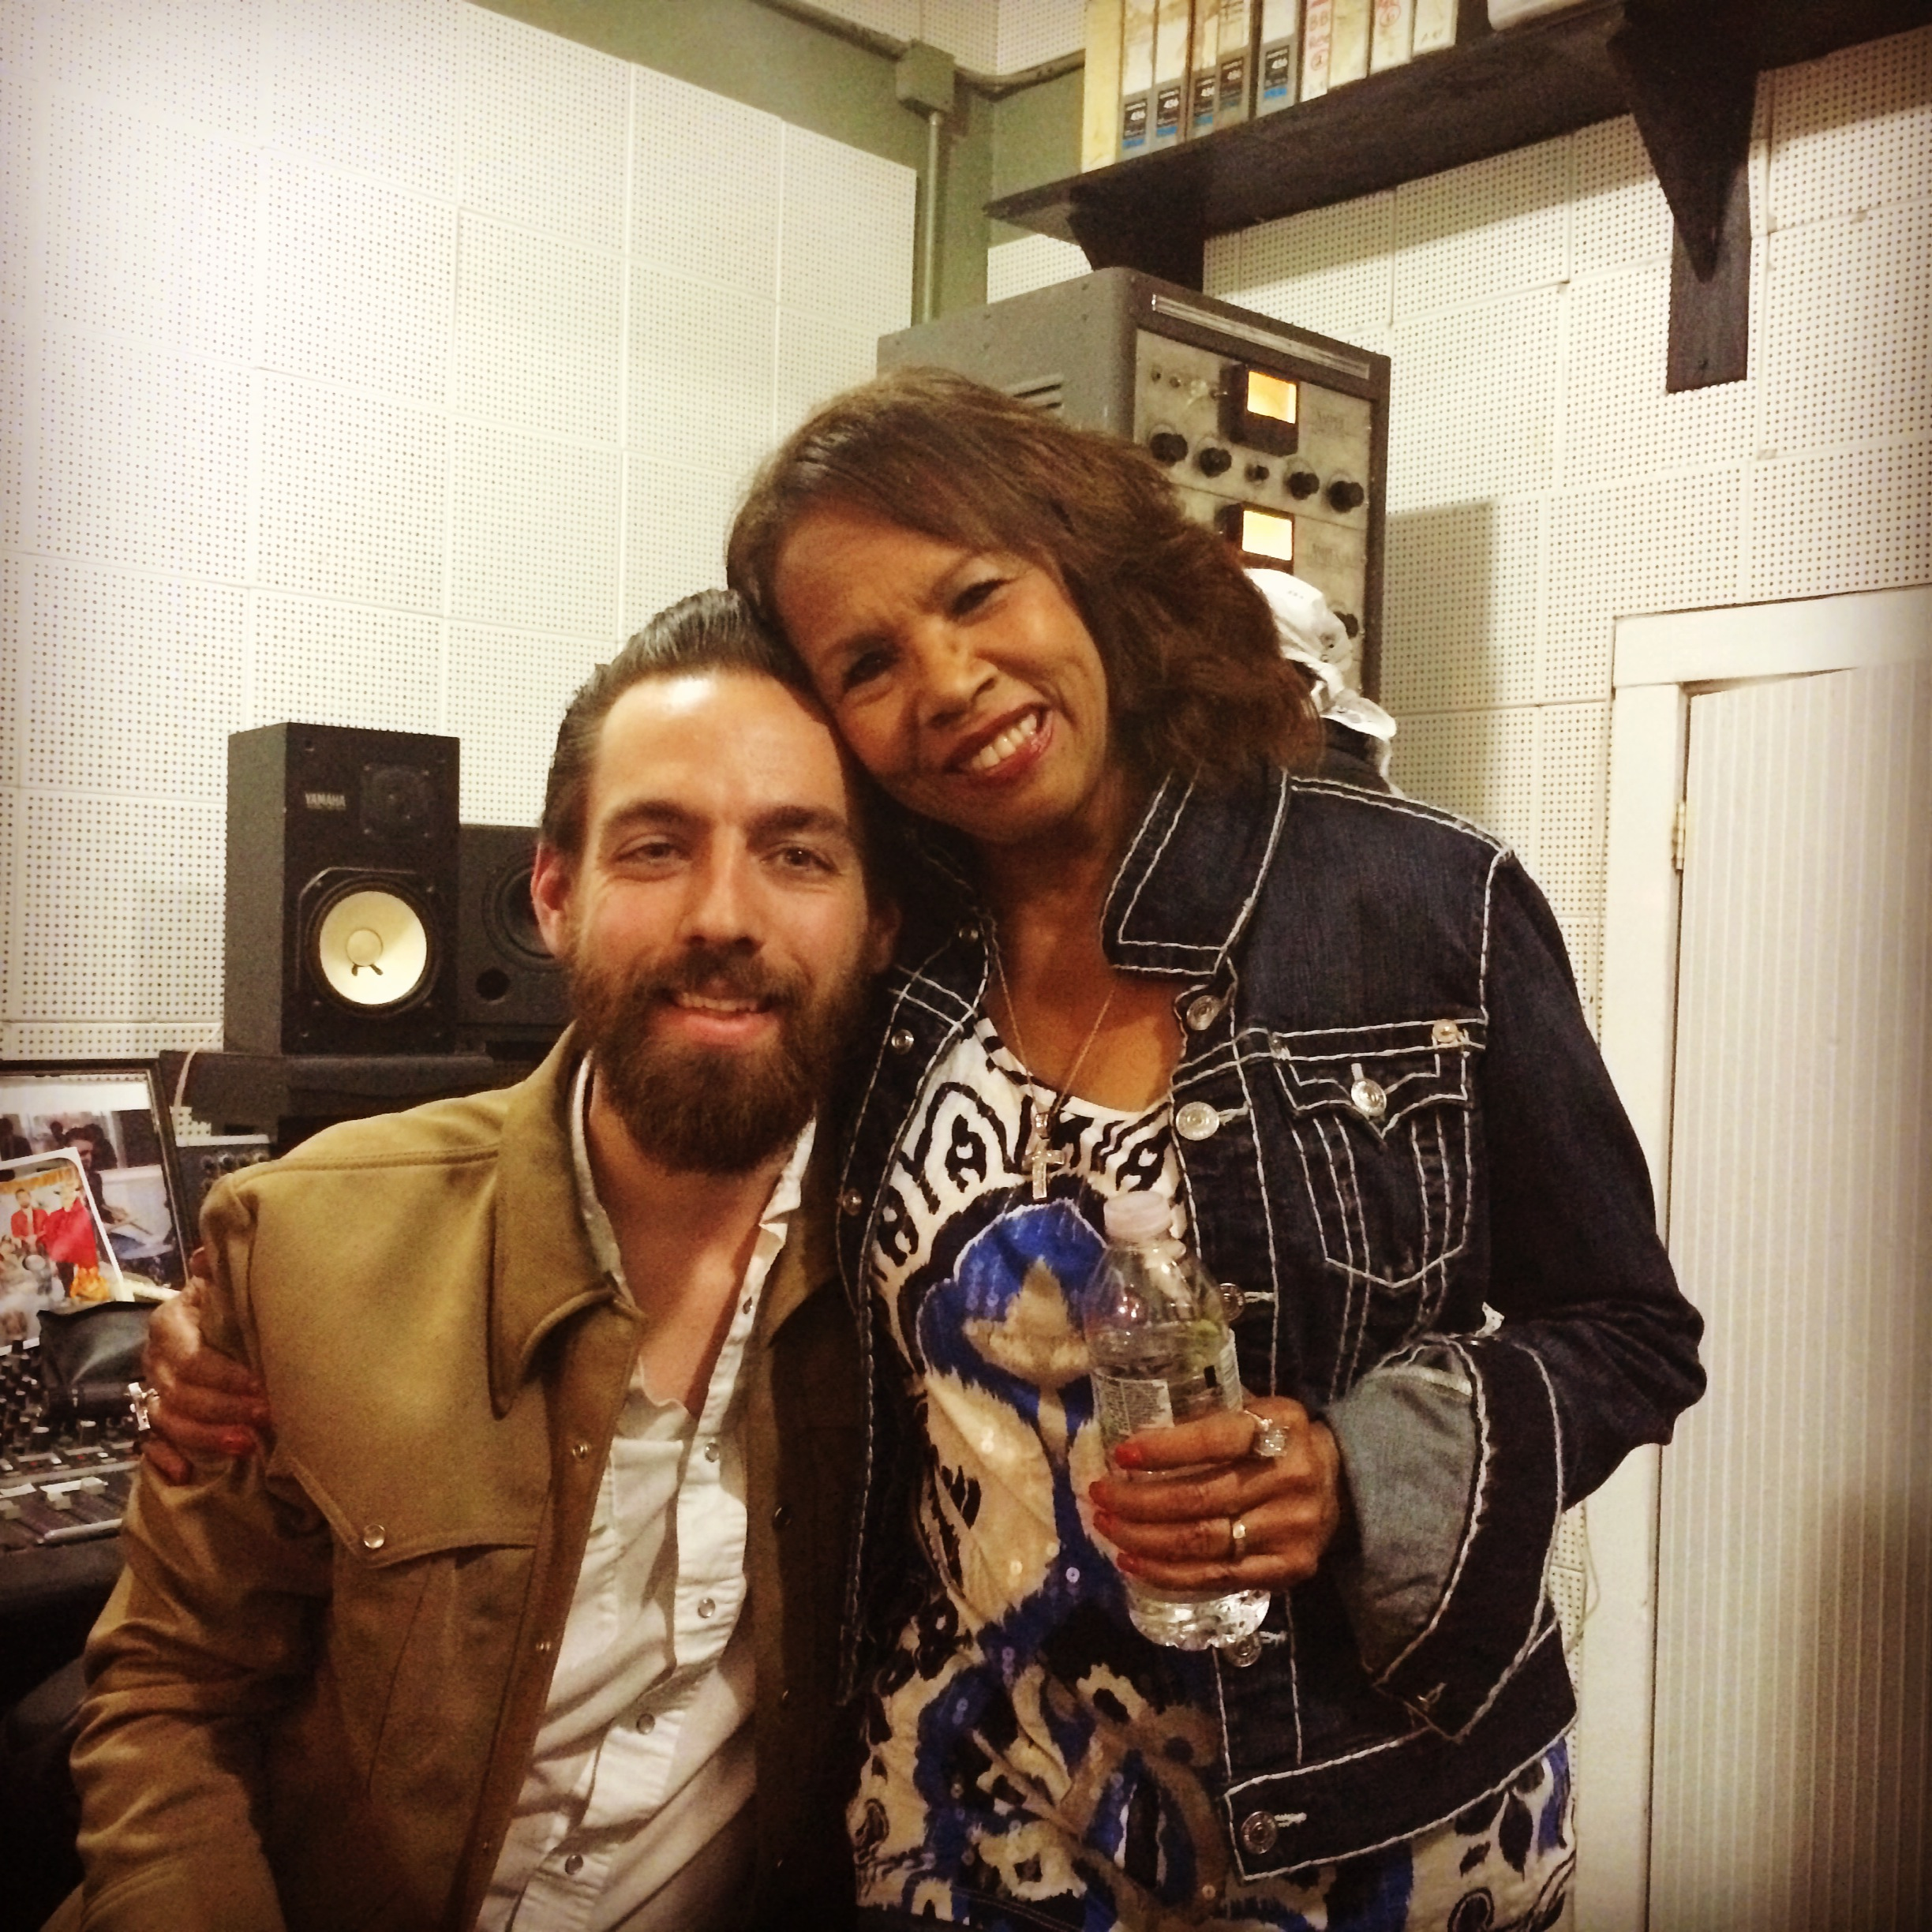 Matt Ross-Spang and the amazing Candi Staton!!